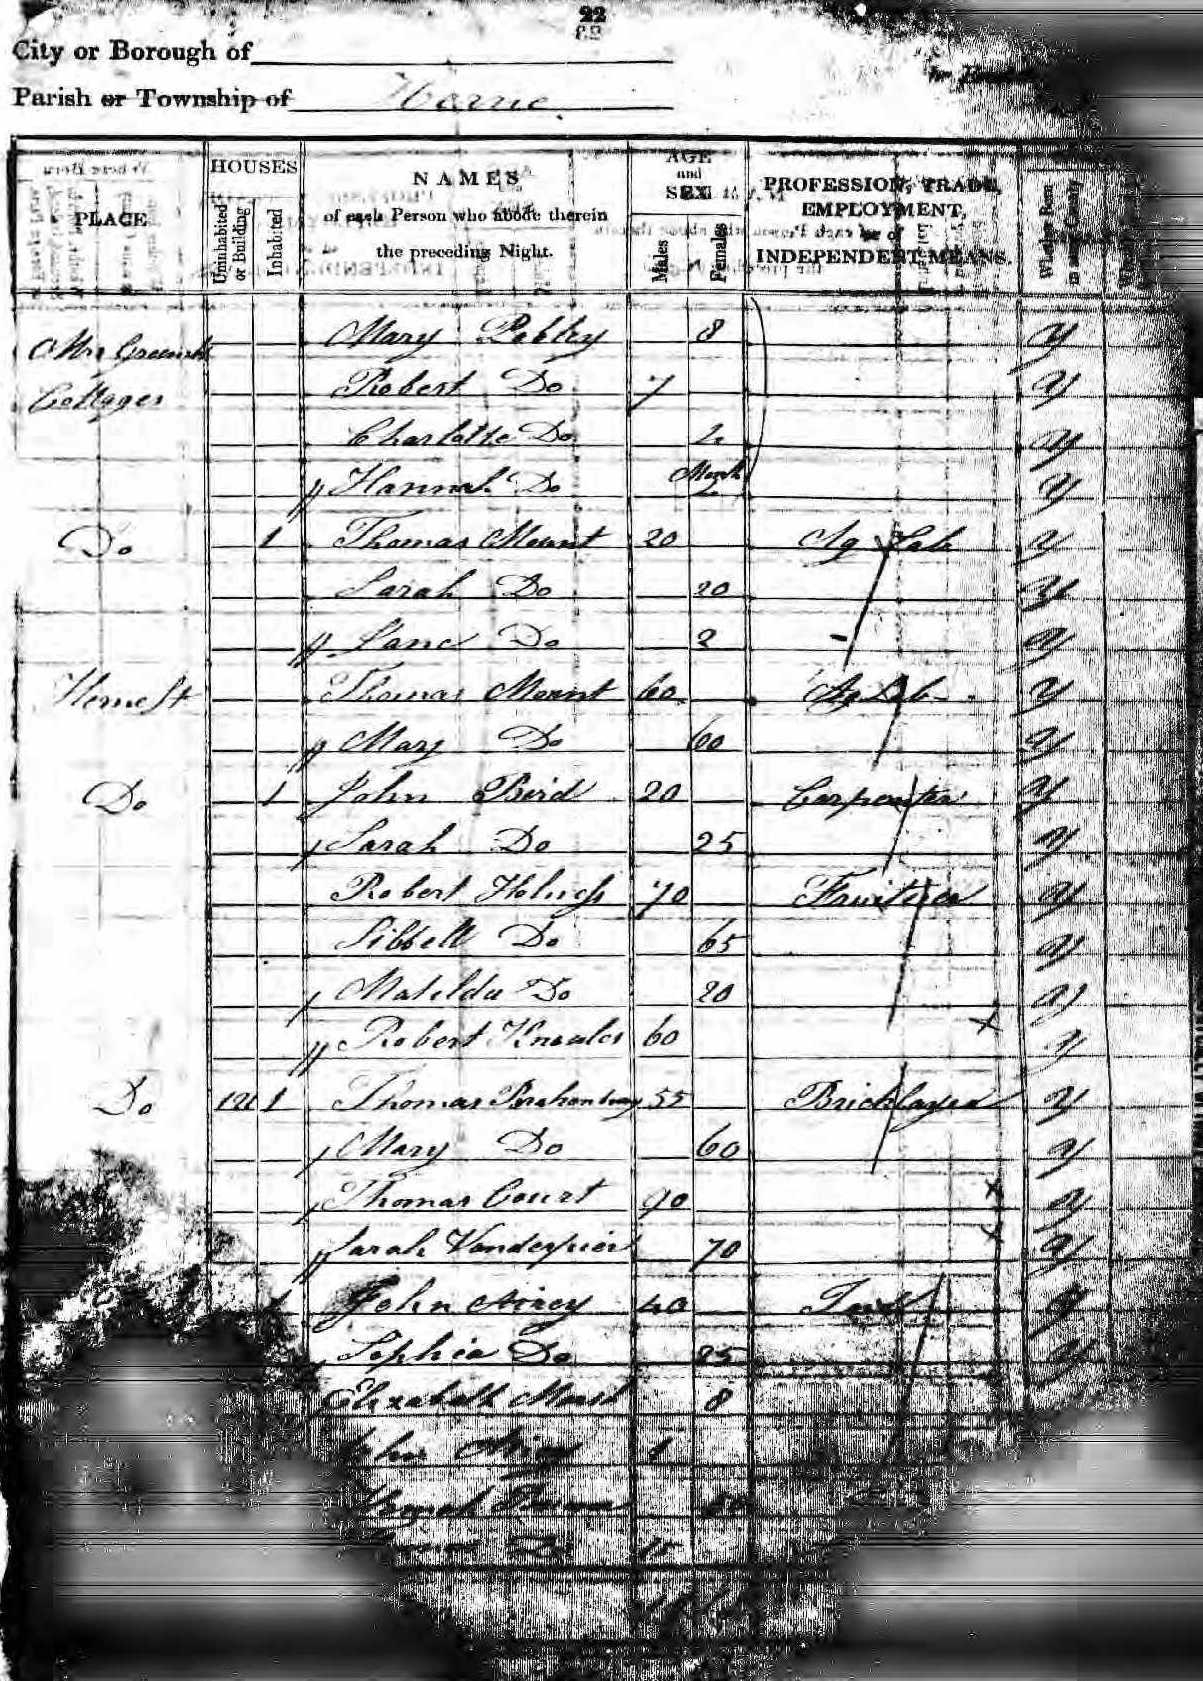 Thomas Mount - 1841 census